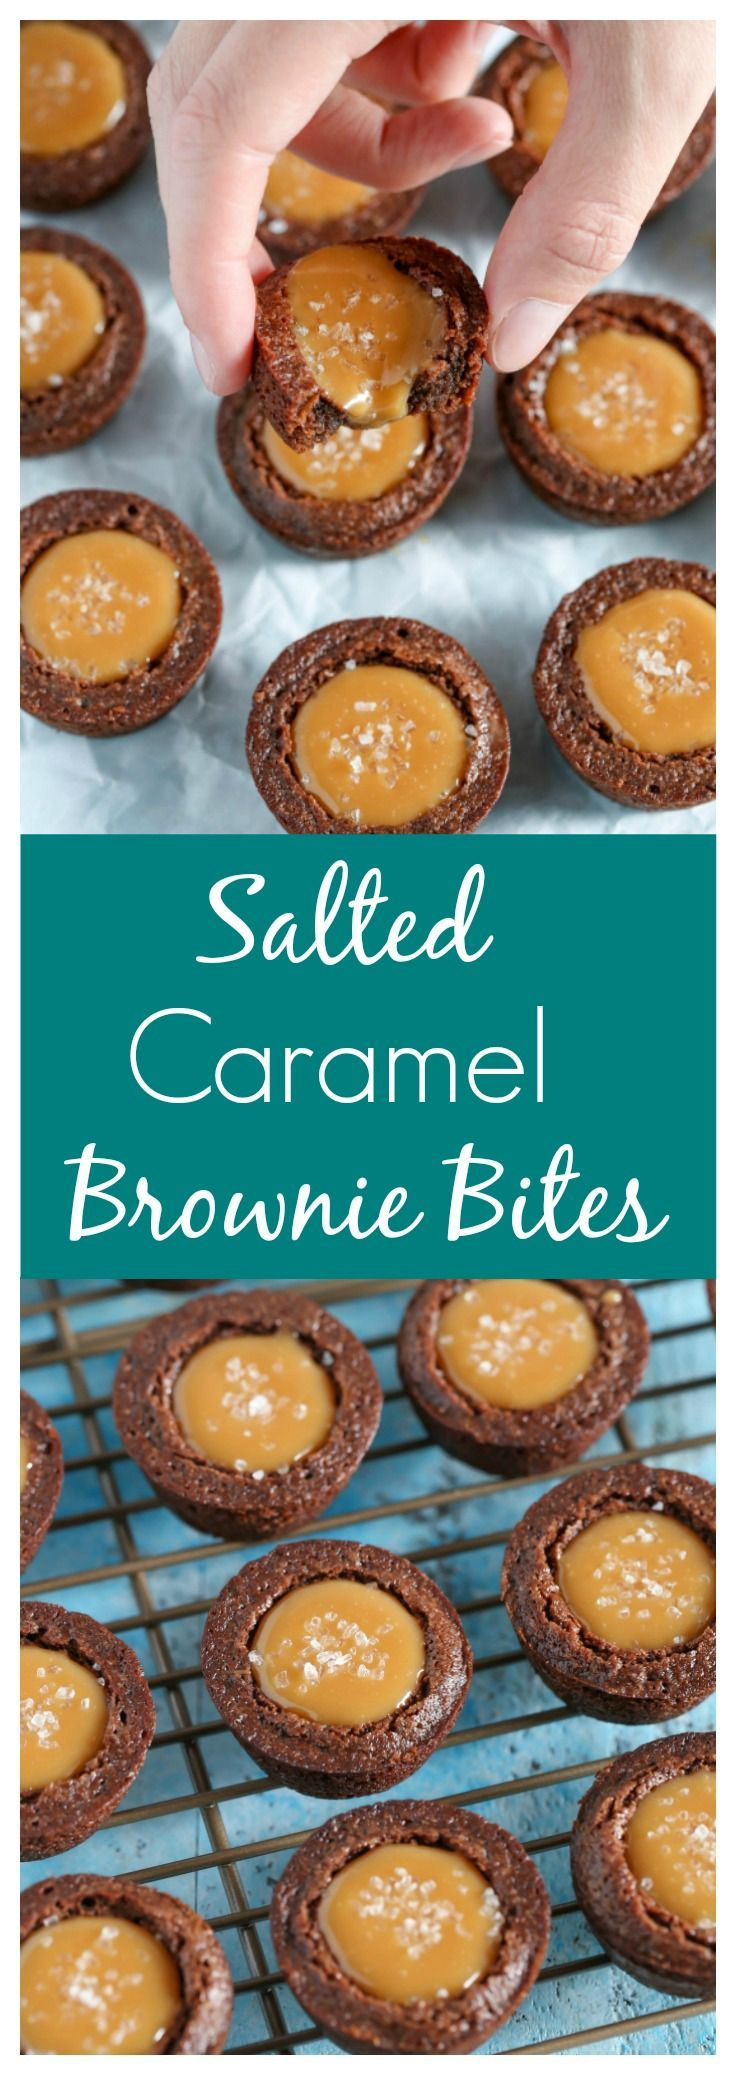 Homemade fudgy brownie bites filled with an easy two-ingredient caramel filling and topped off with sea salt. These Salted Caramel Brownie Bites are the perfect mini dessert!